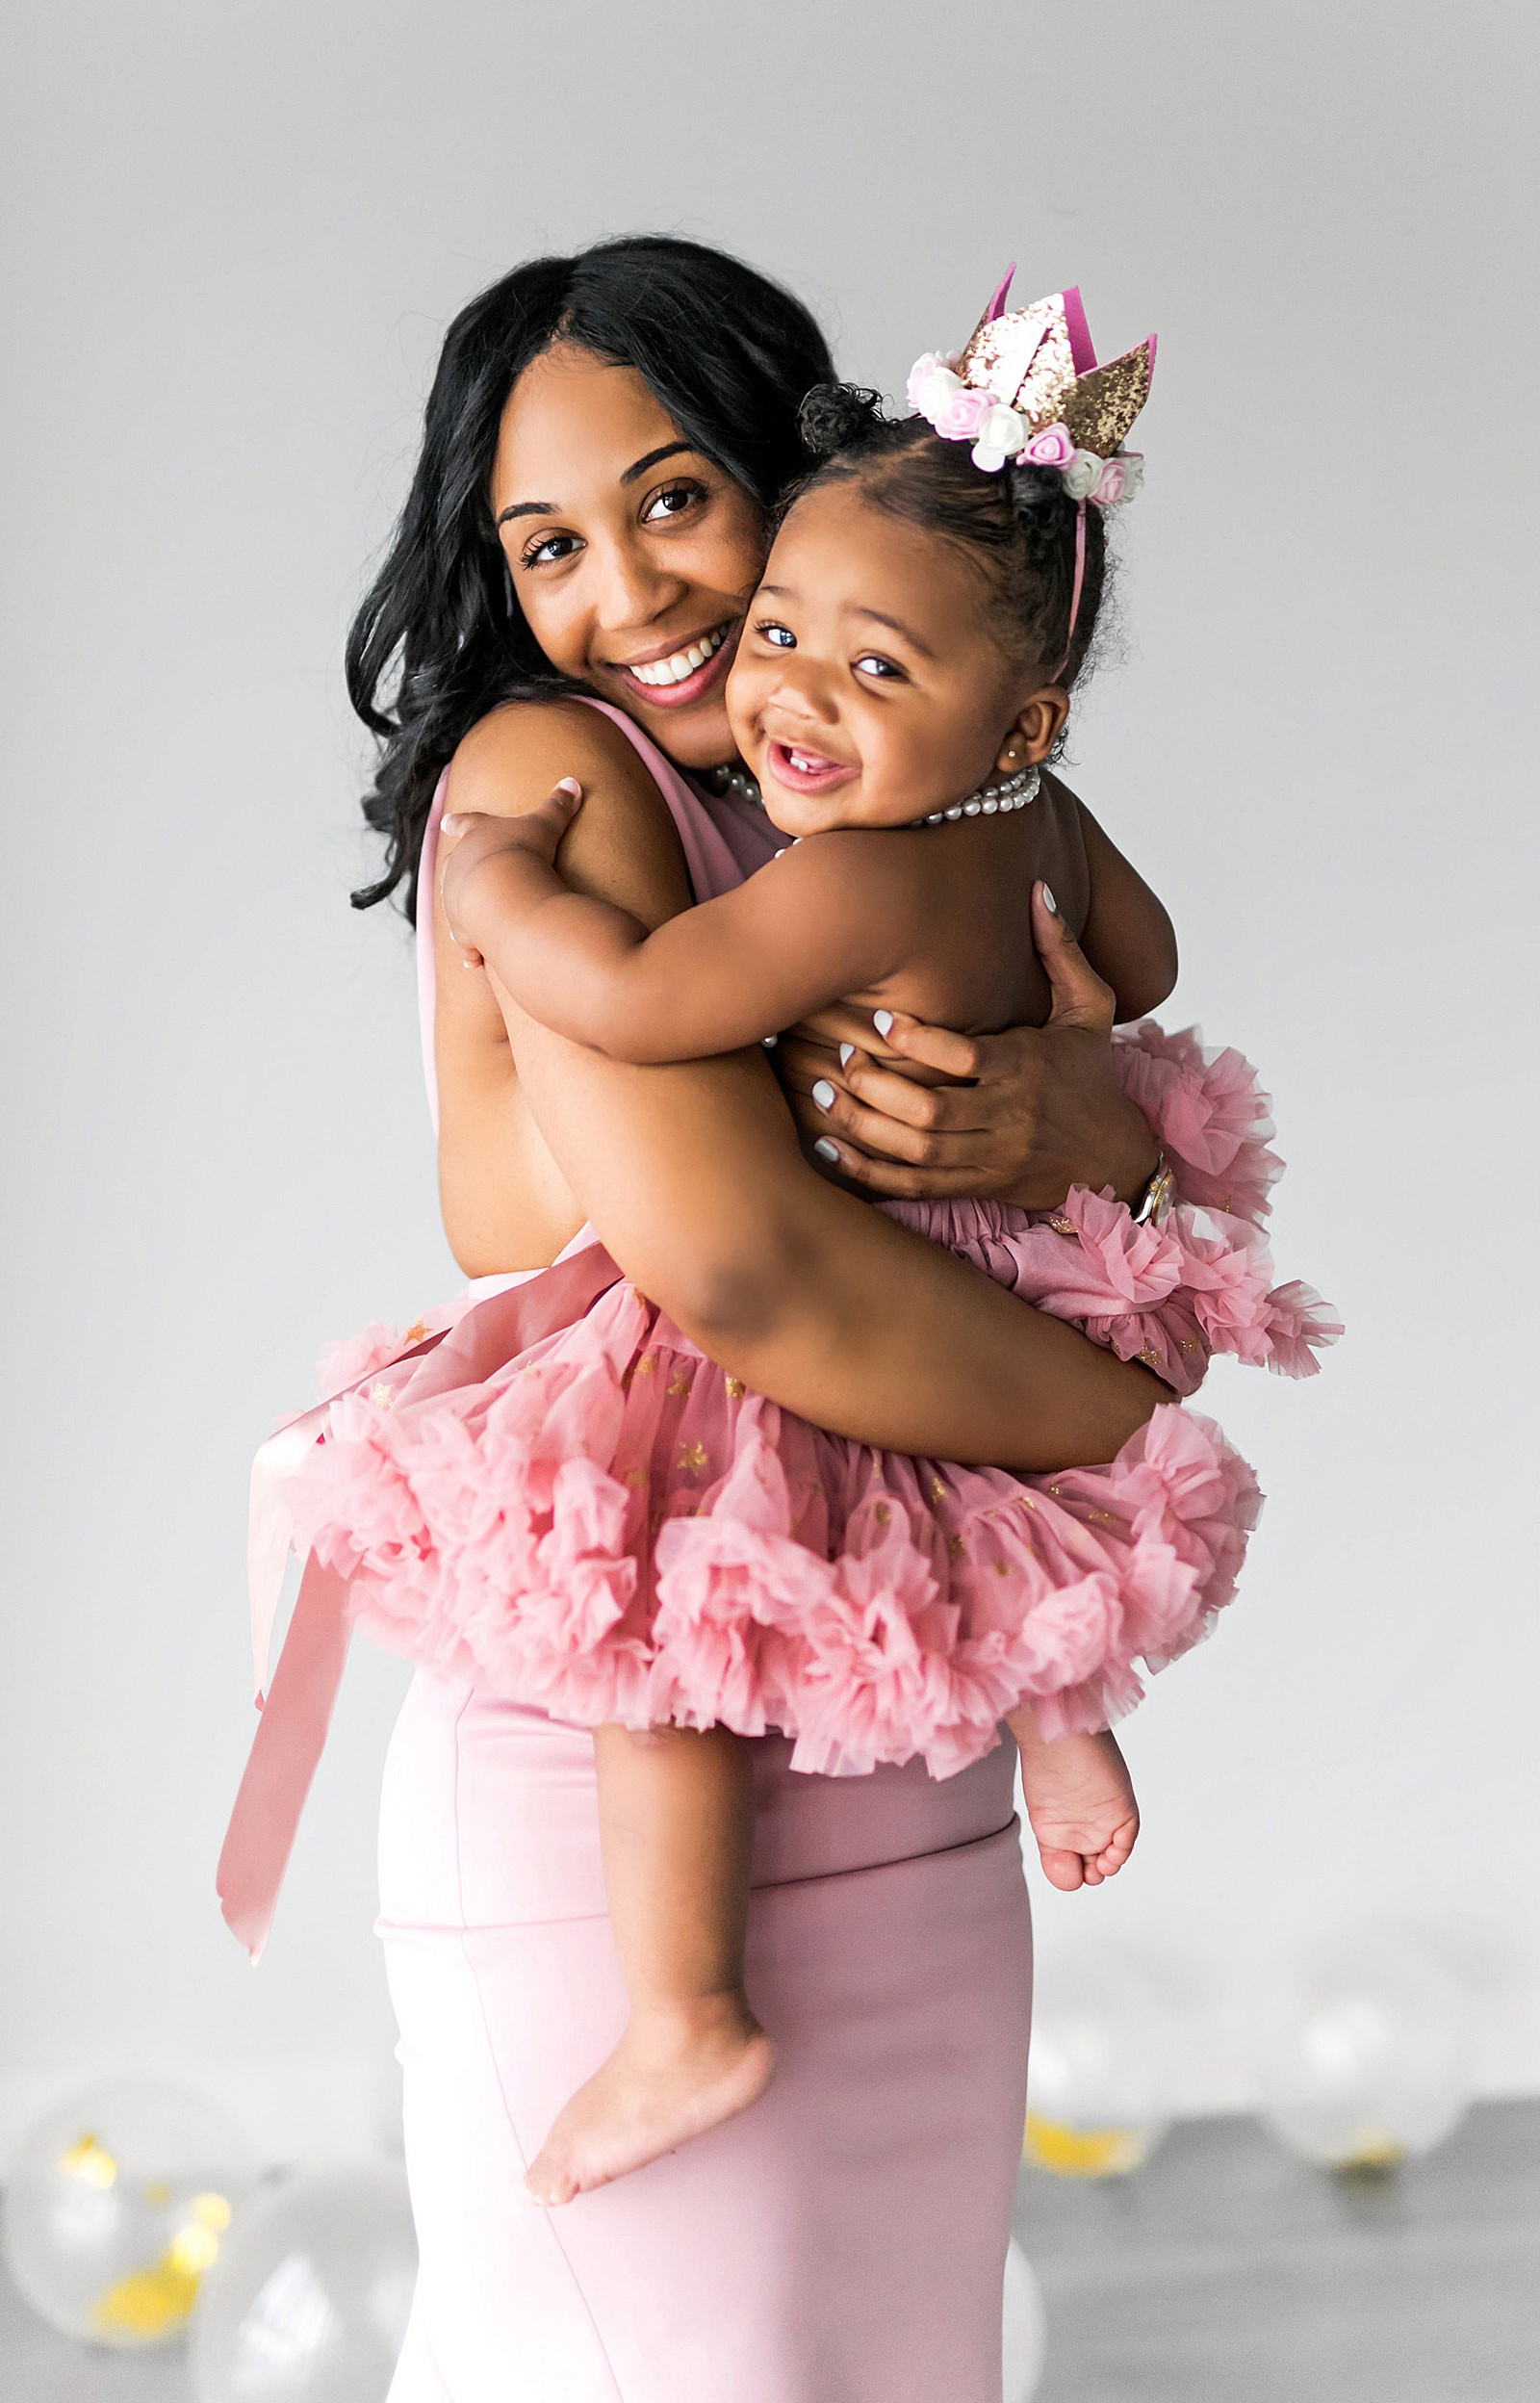 briana williams hugs her daughter